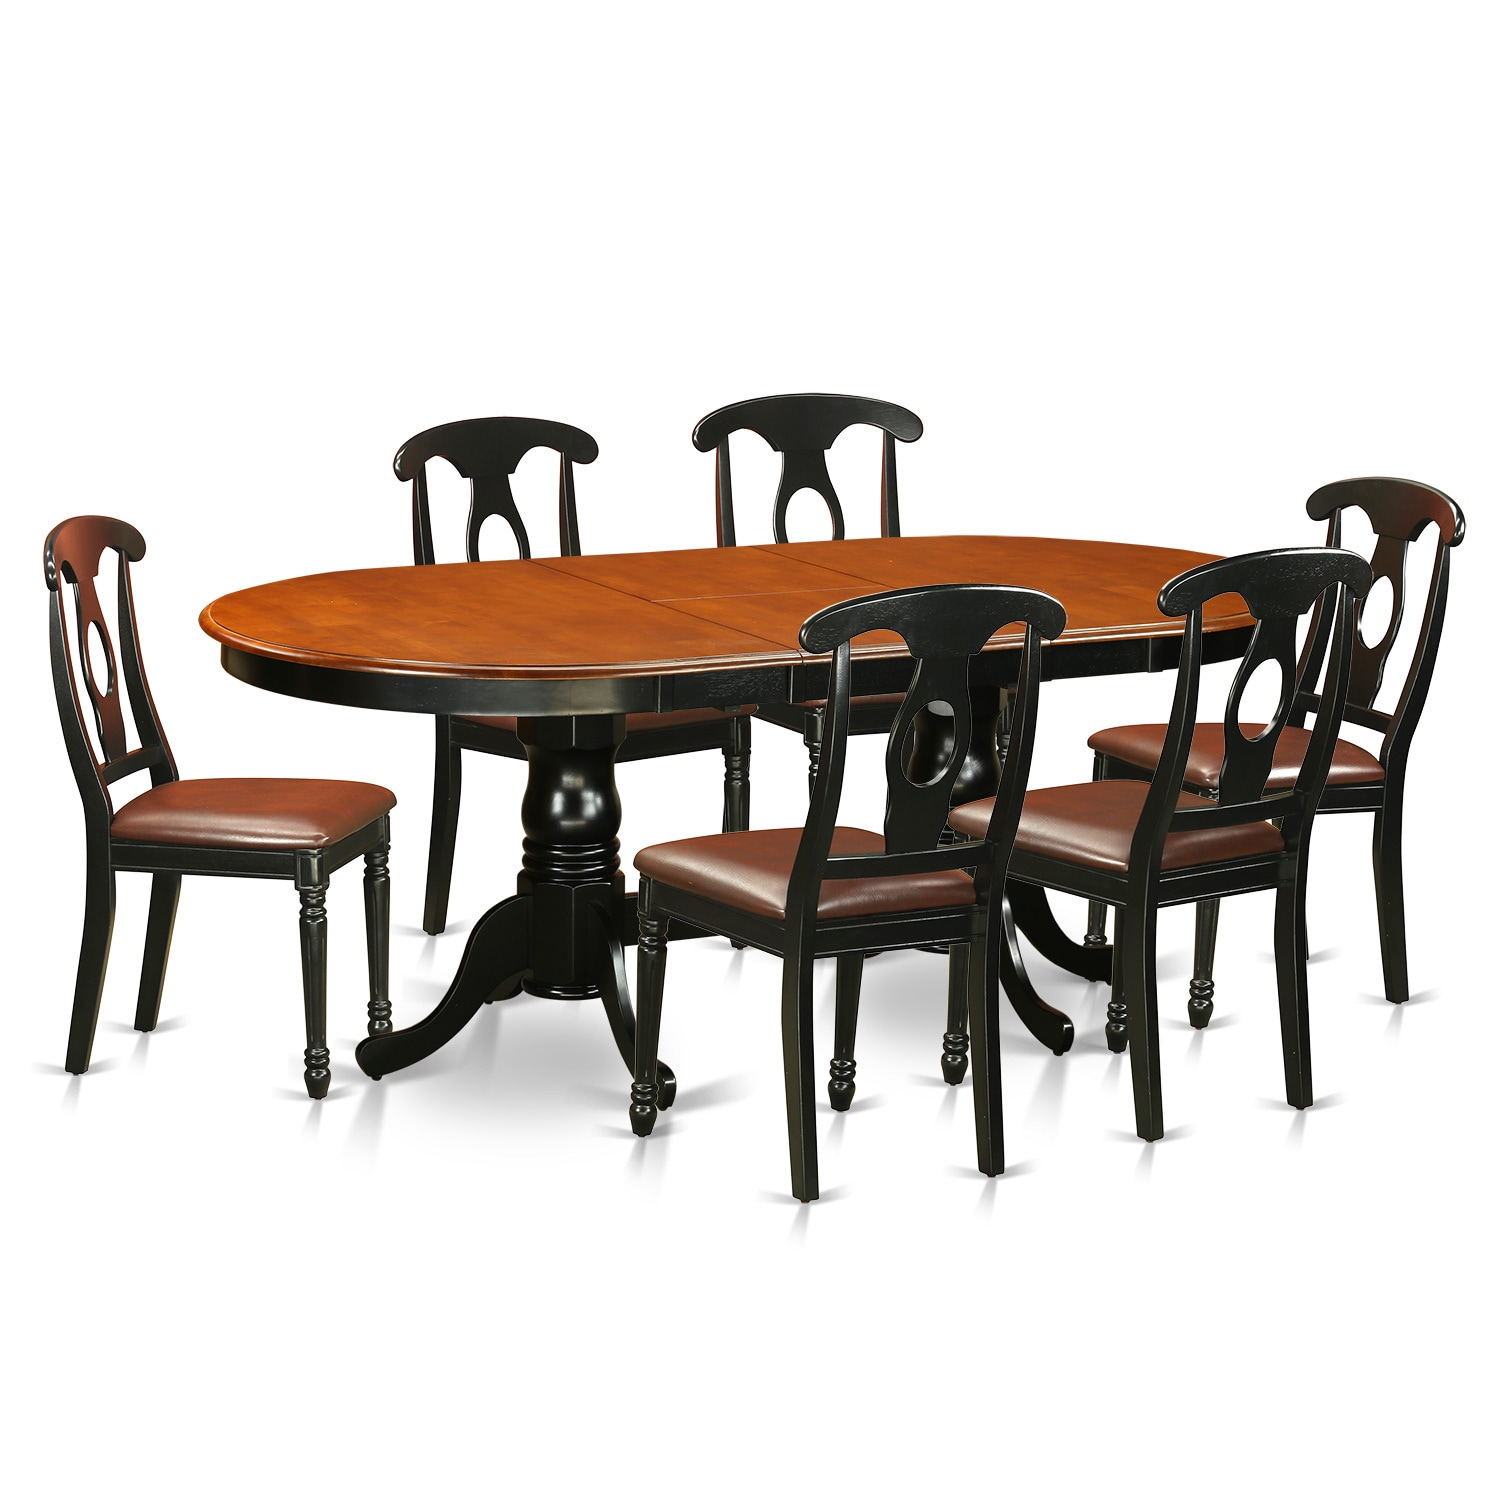 18 x 60 table compare prices at nextag for Dining room table 40 x 60